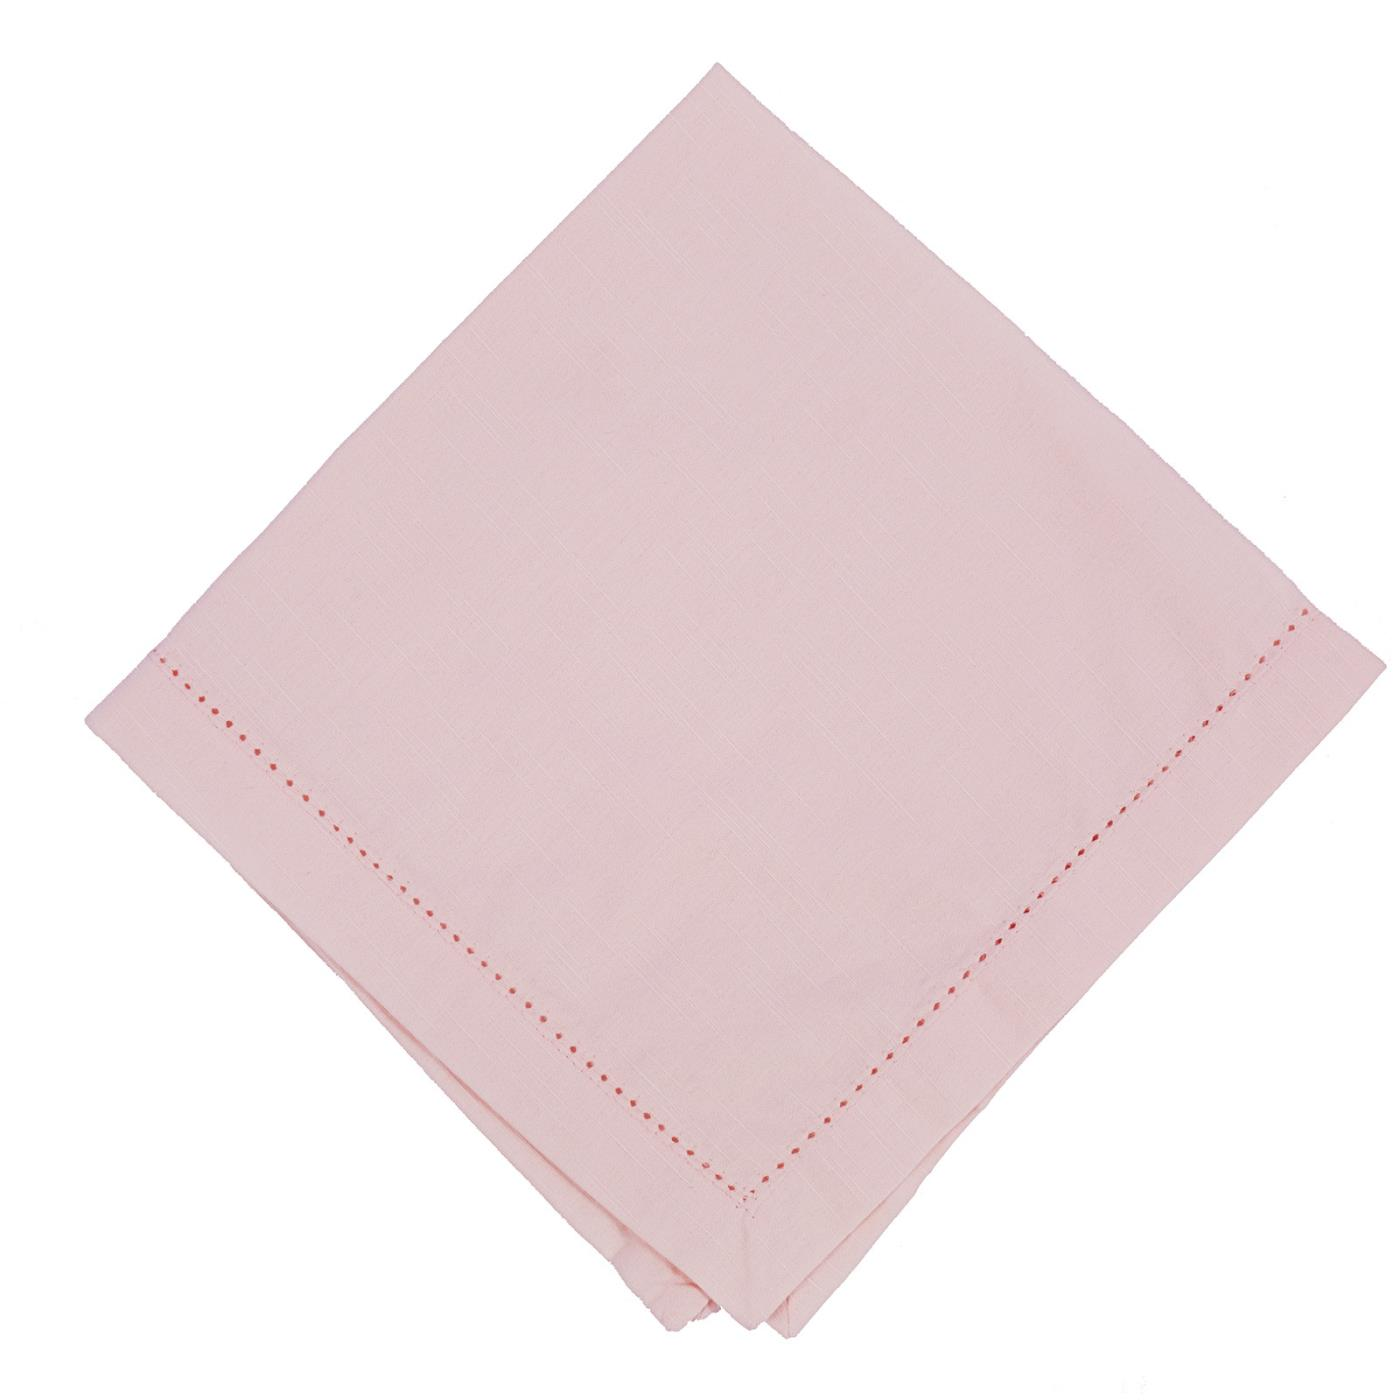 Pale Pink - Linen - Hemstitched